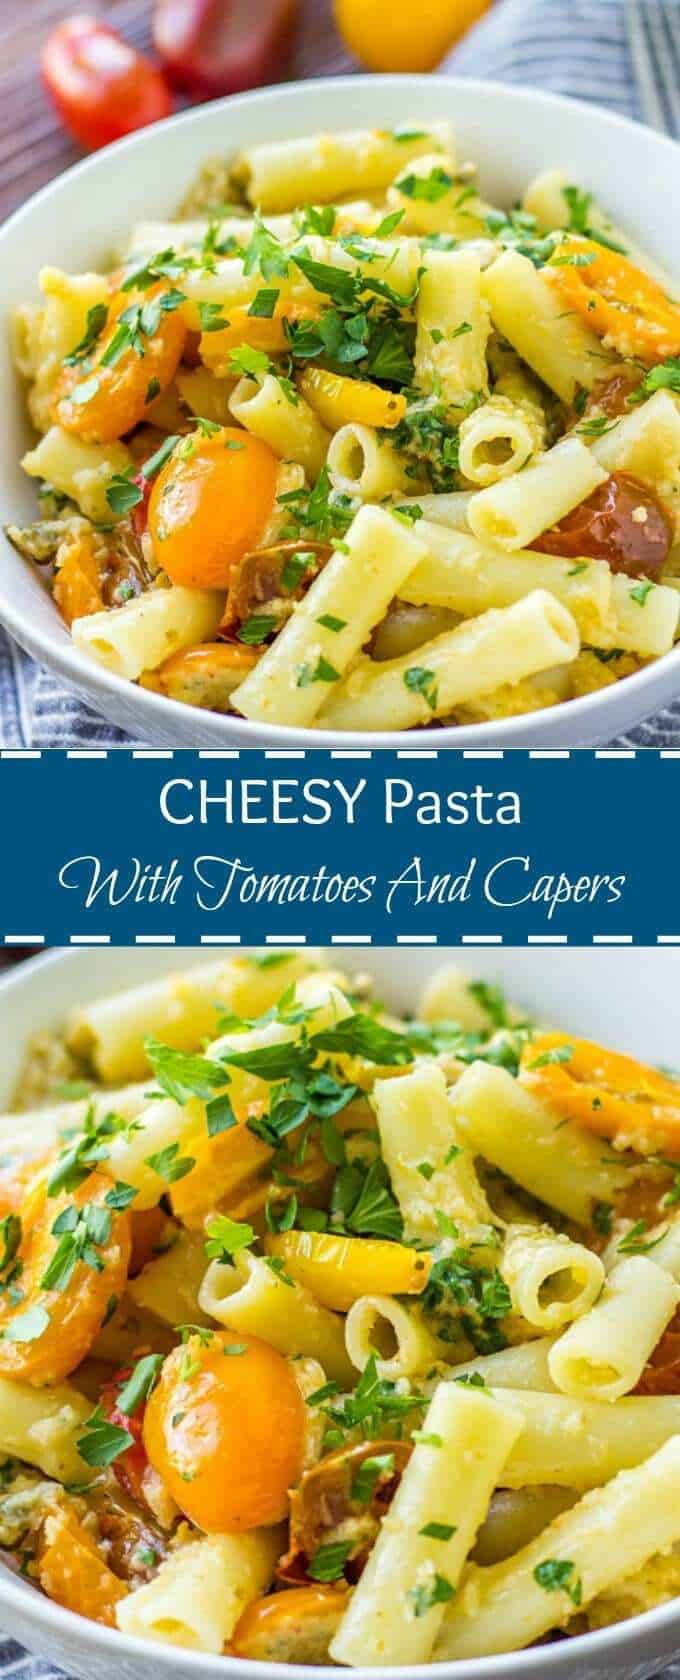 Cheesy Pasta With Capers And Tomatoes makes a quick and delicious weeknight meal. Stuffed with vibrant grape tomatoes, tangy capers and delicious combination of cheeses, this pasta recipe is sure to become your favorite.